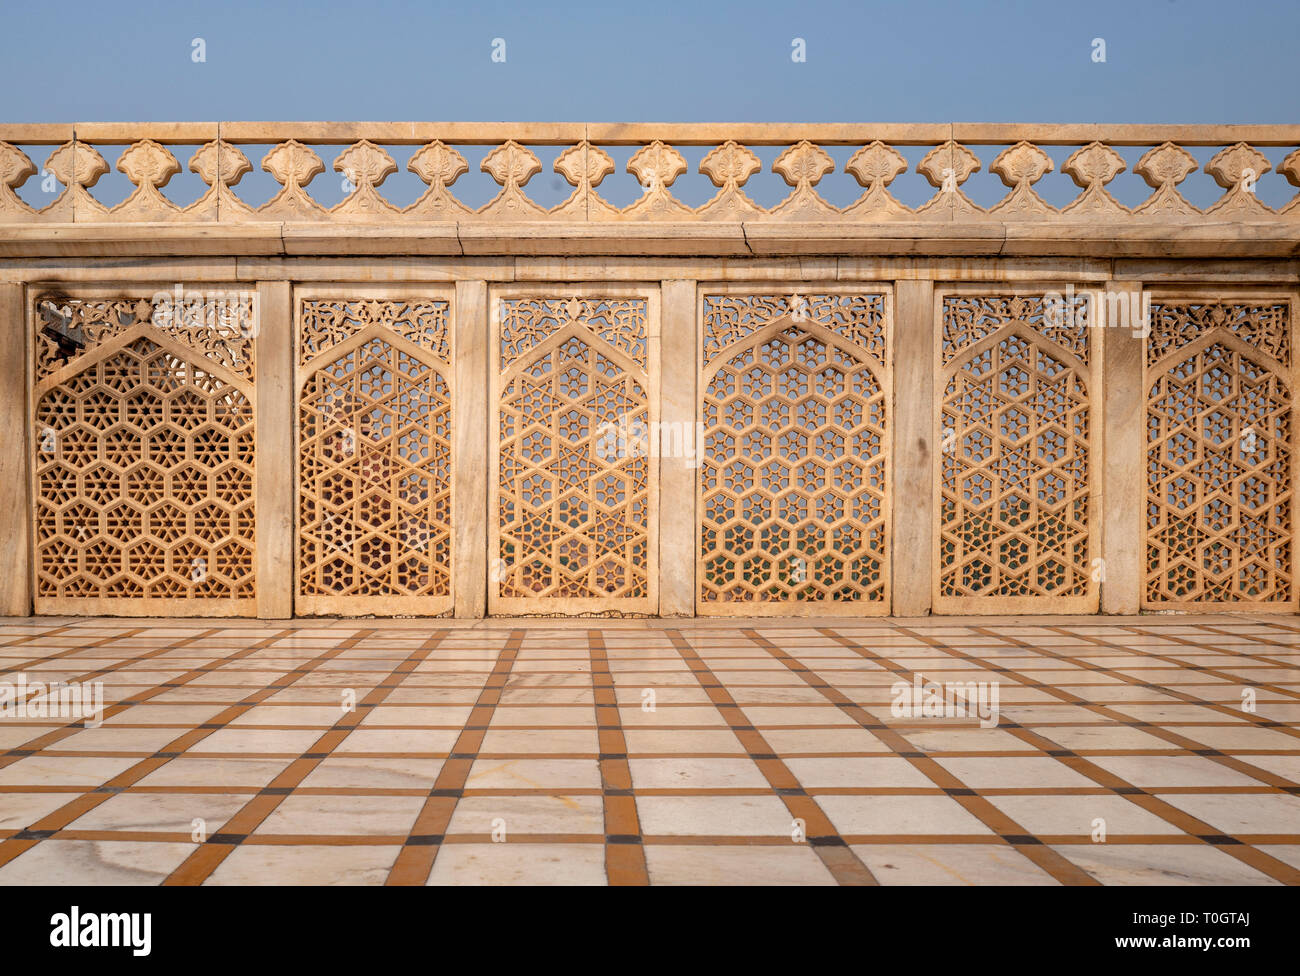 Details of Agra's Red Fort in India Stock Photo